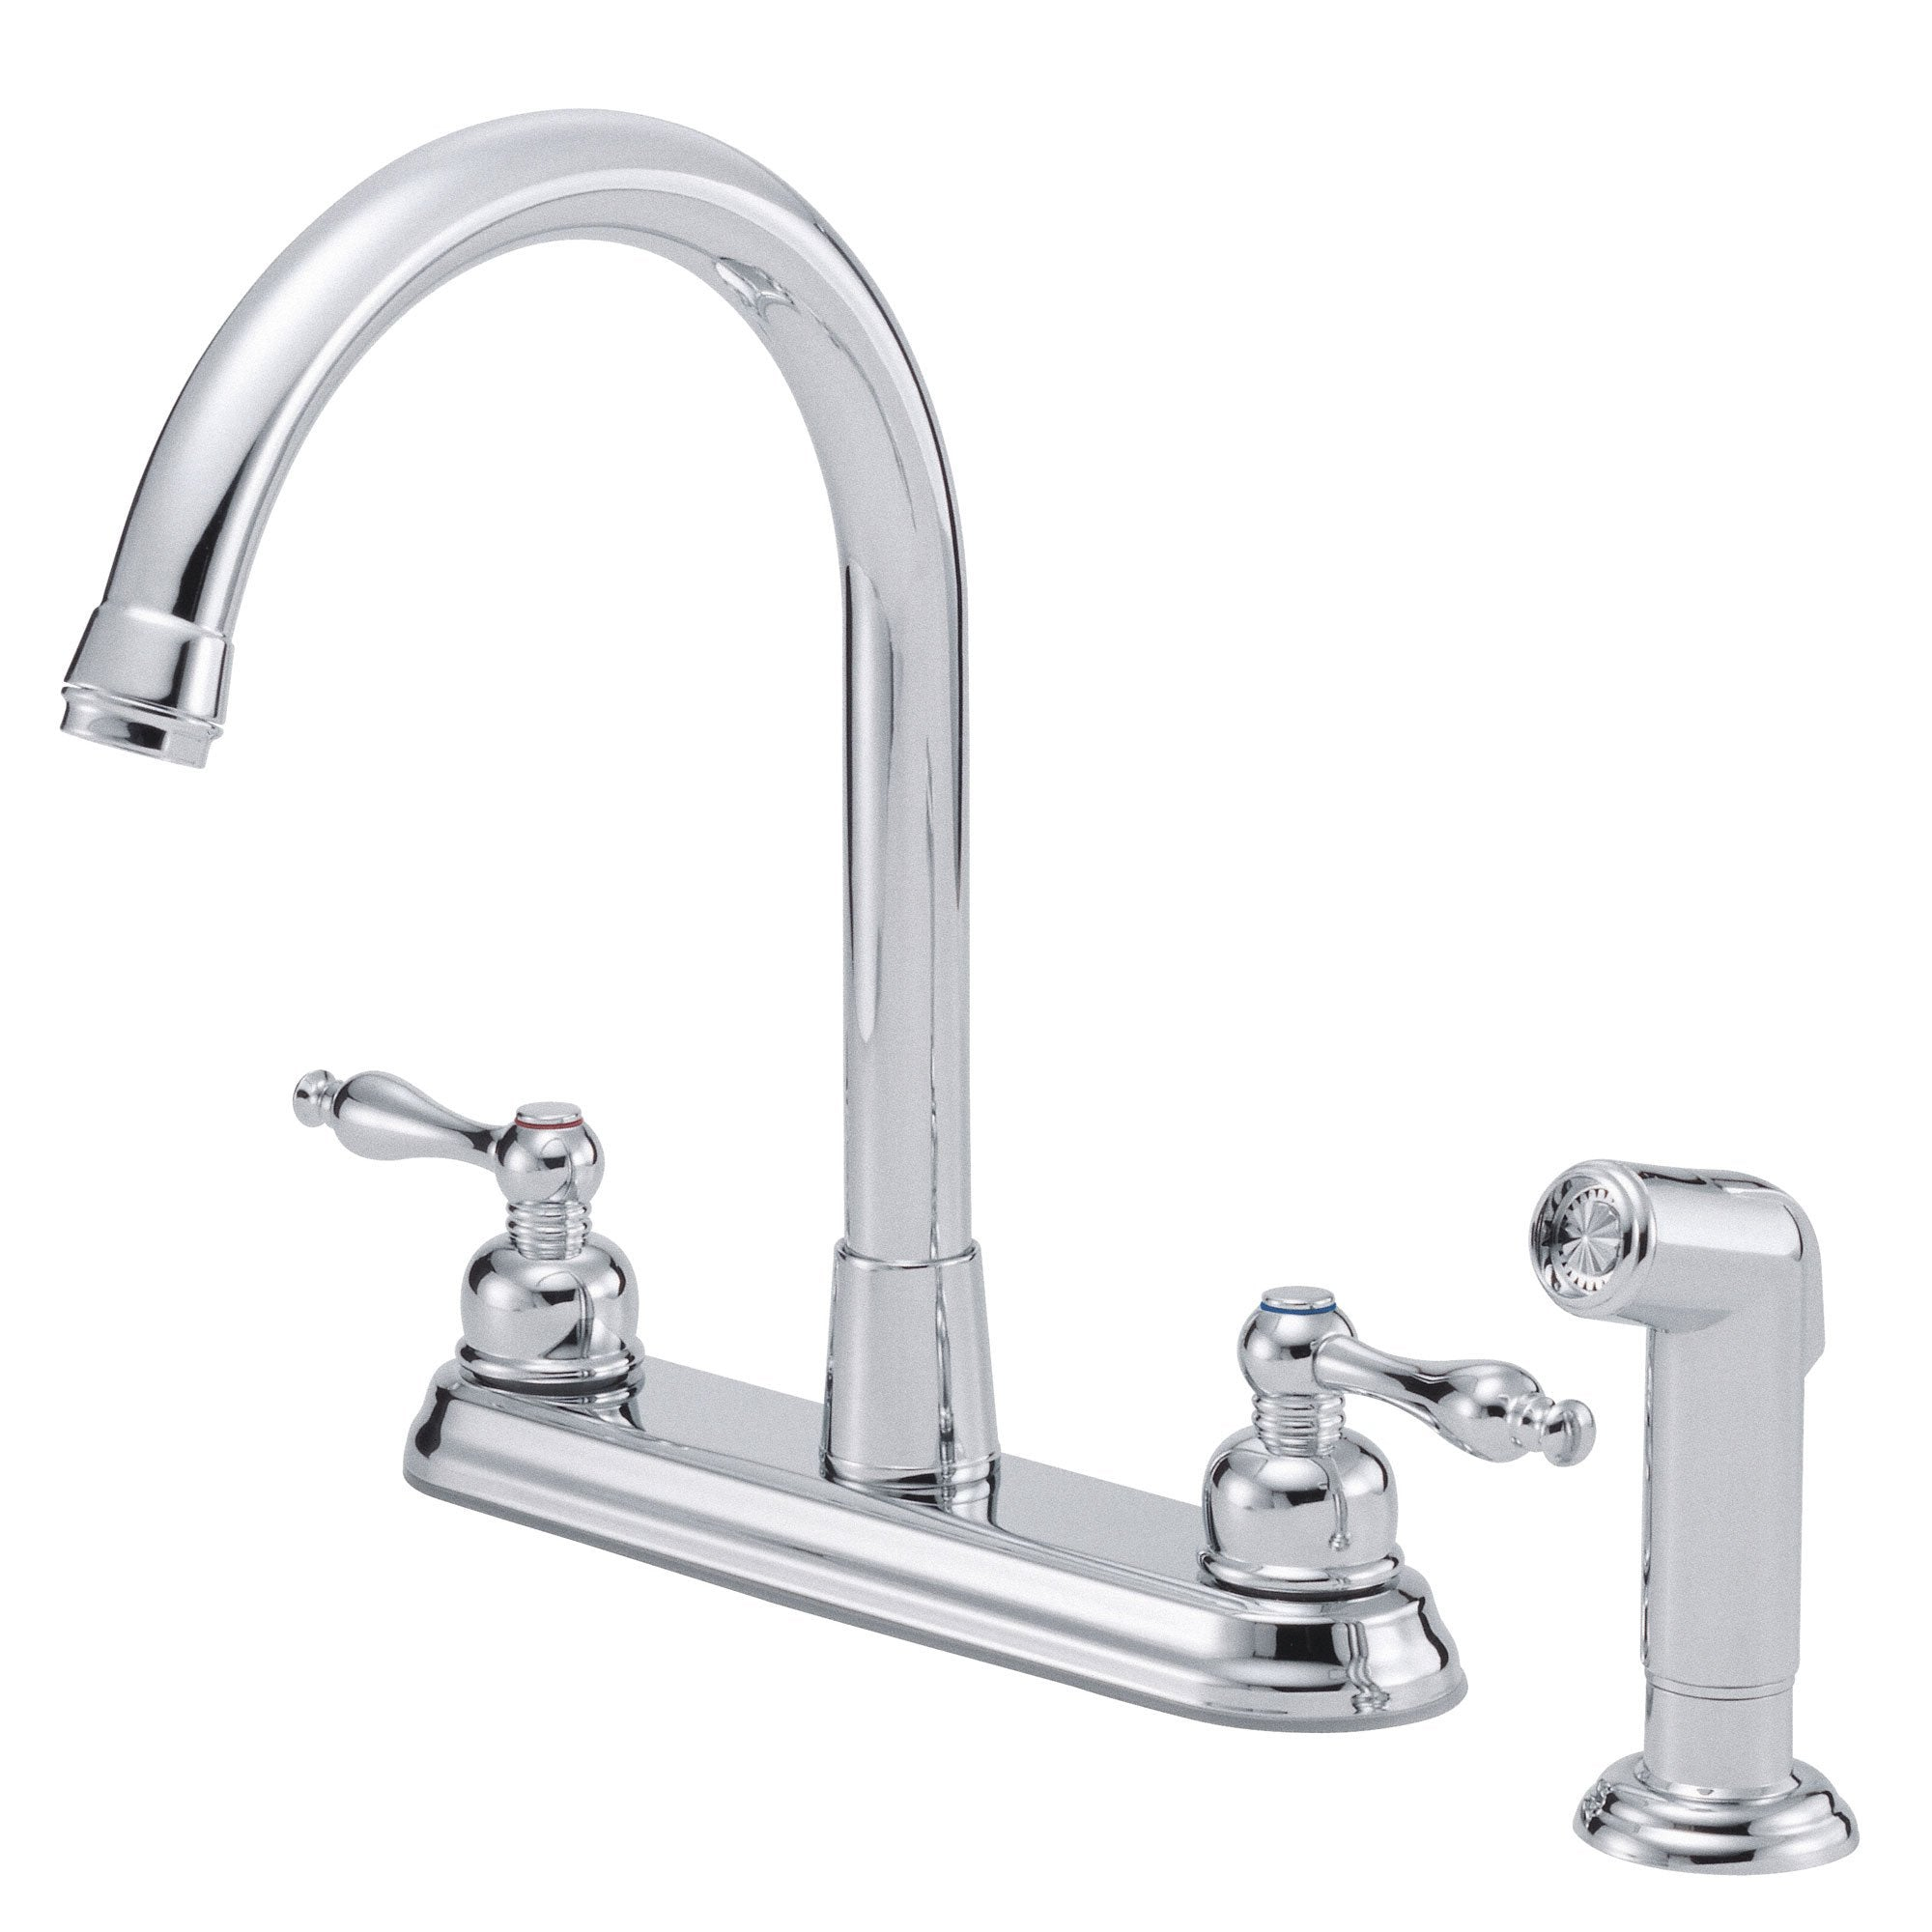 "Danze Sheridan Chrome Two Handle 8"" Centerset Kitchen Faucet with Sprayer"